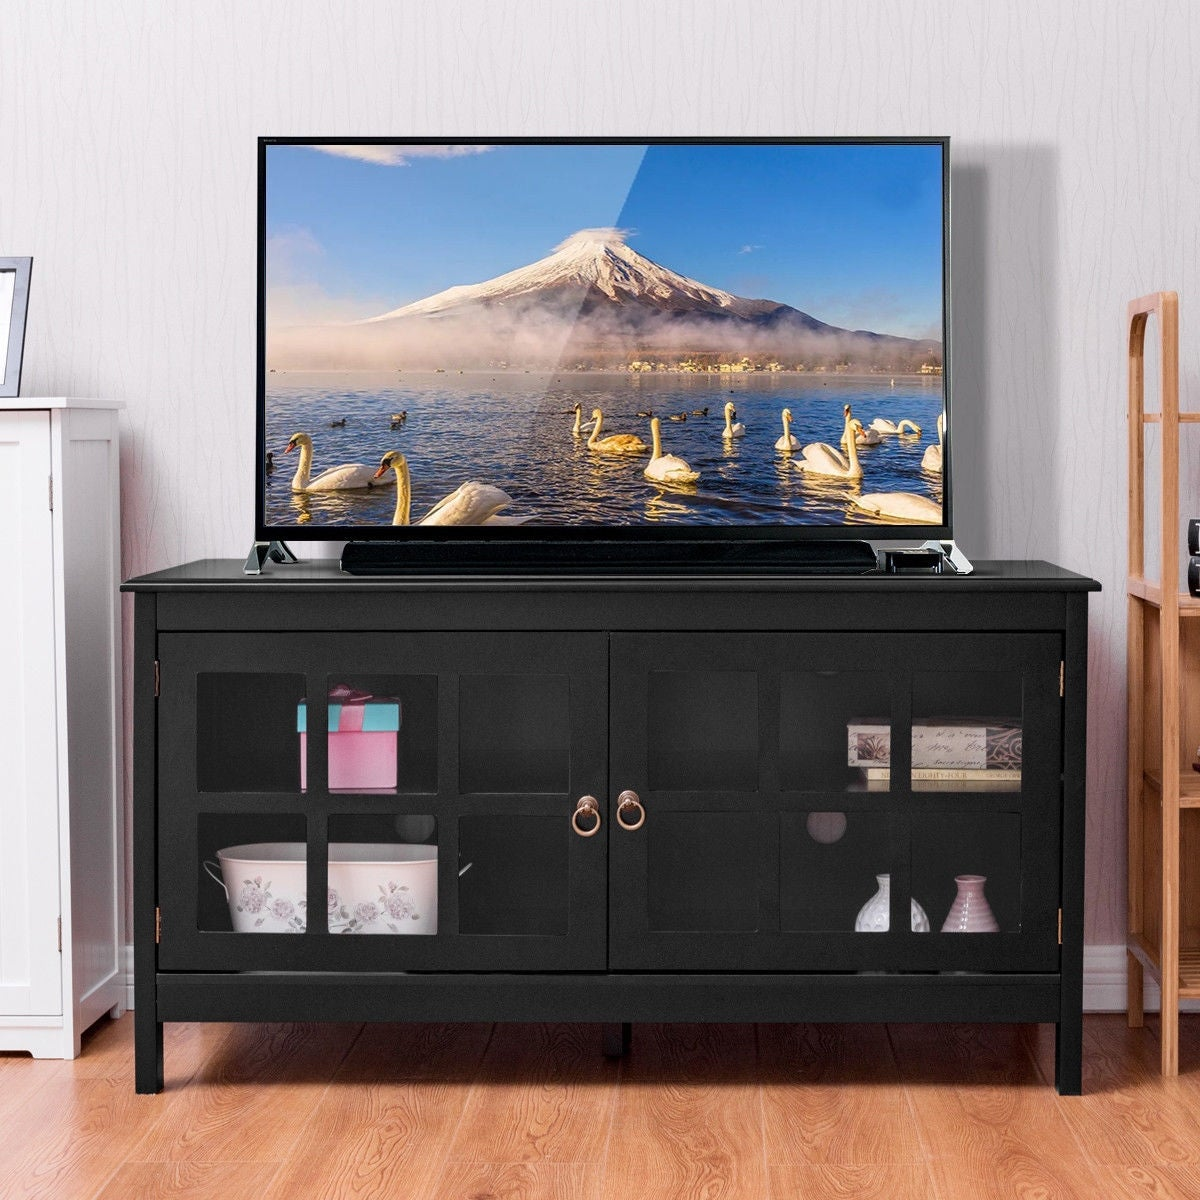 Gymax 50 Tv Stand Modern Wood Storage Console Entertainment Center On Sale Overstock 20714615